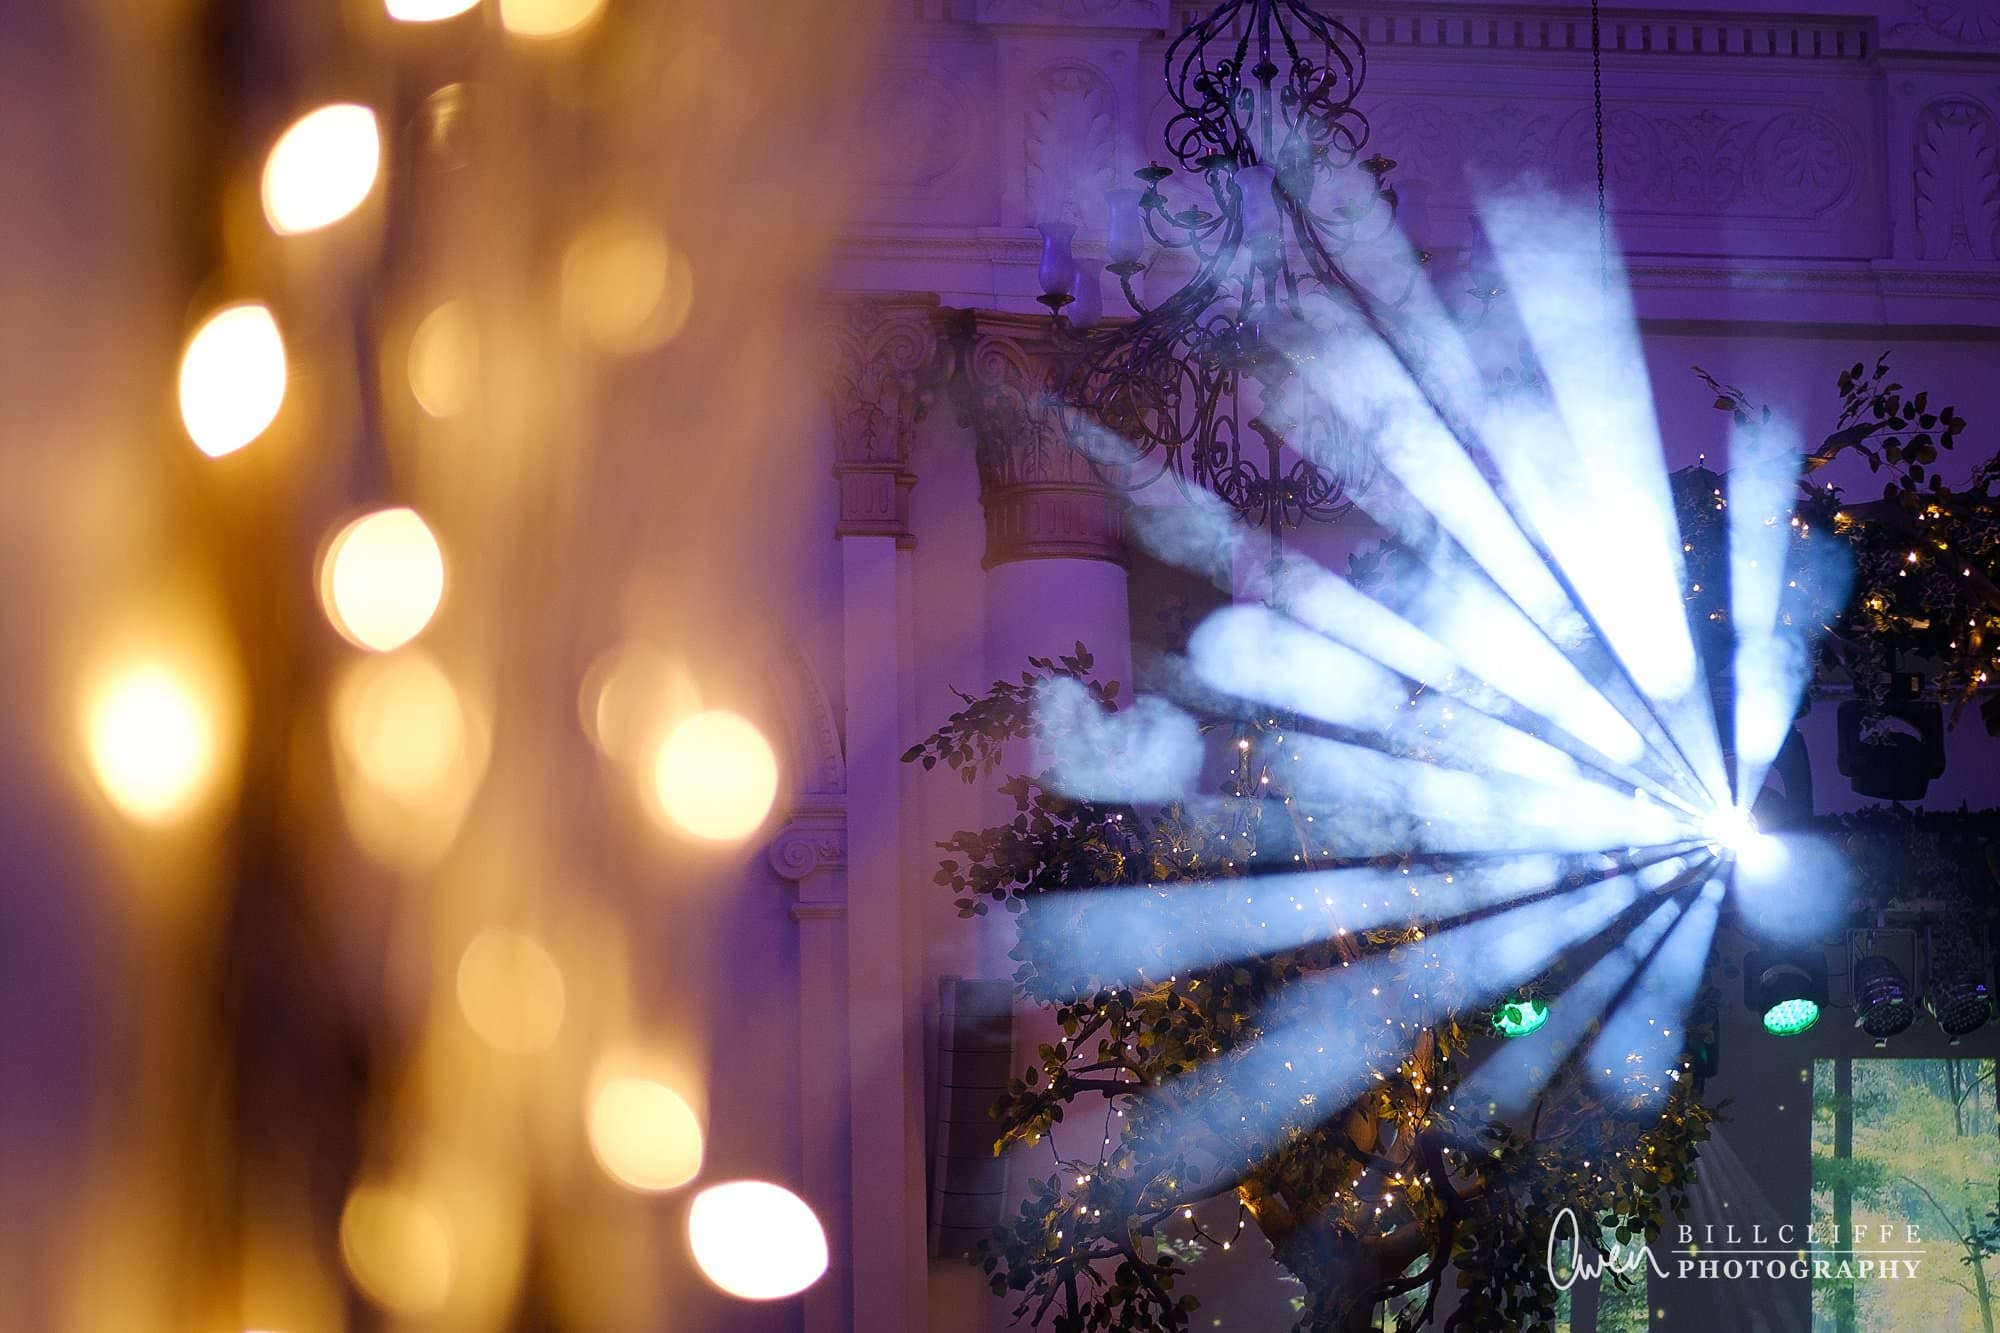 london event photographer 8 northumberland avenue mh 007 - A Christmas Party at 8 Northumberland